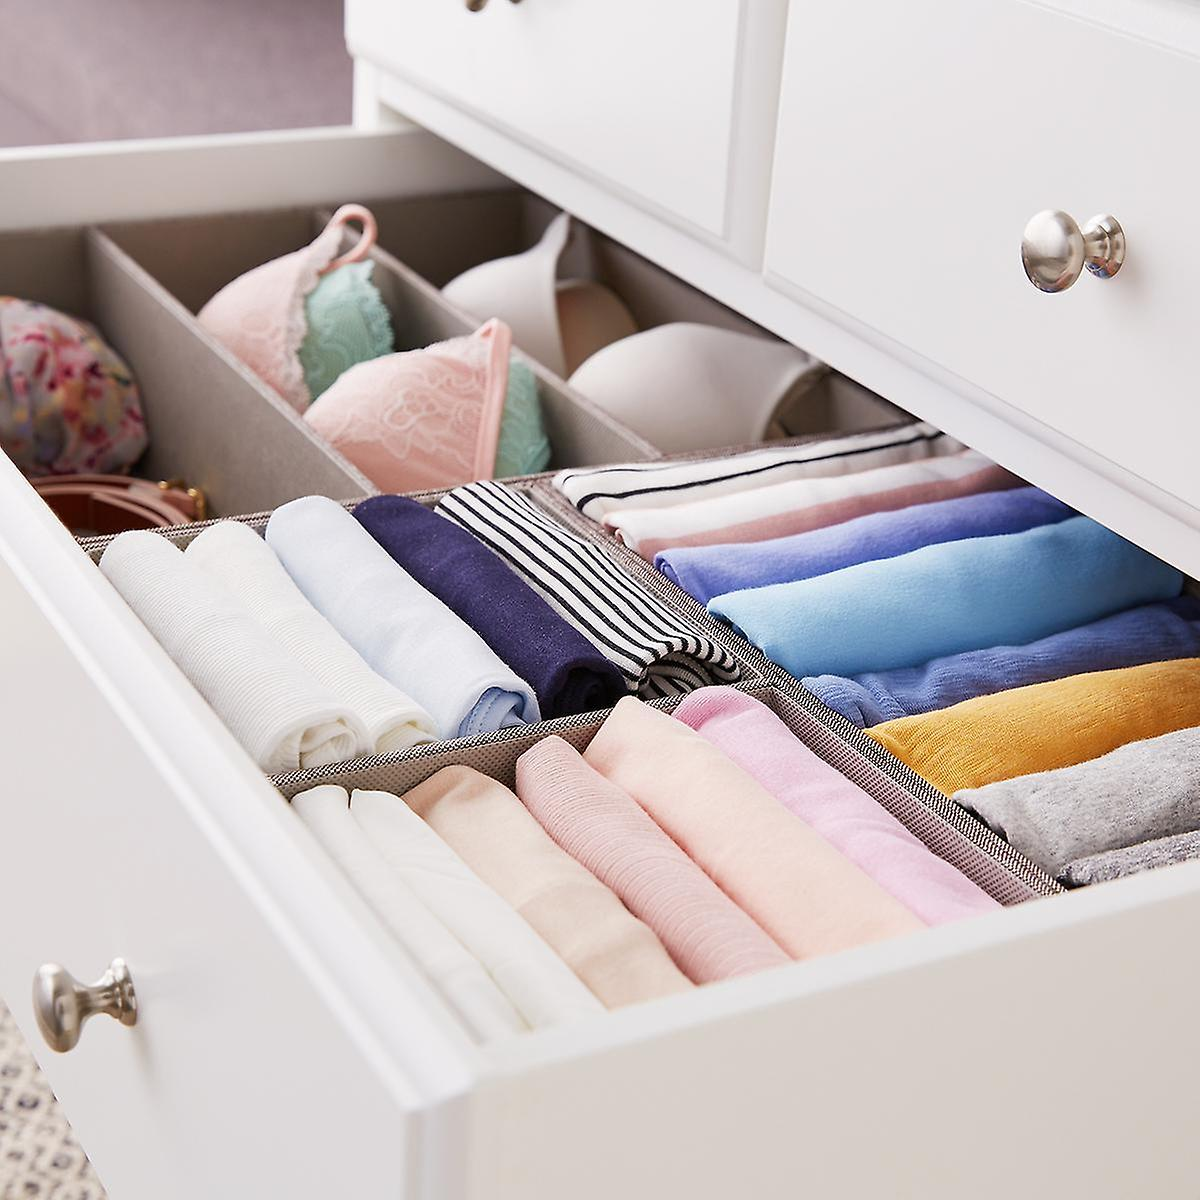 28 x 14 Grey Drawer Organization Starter Kit